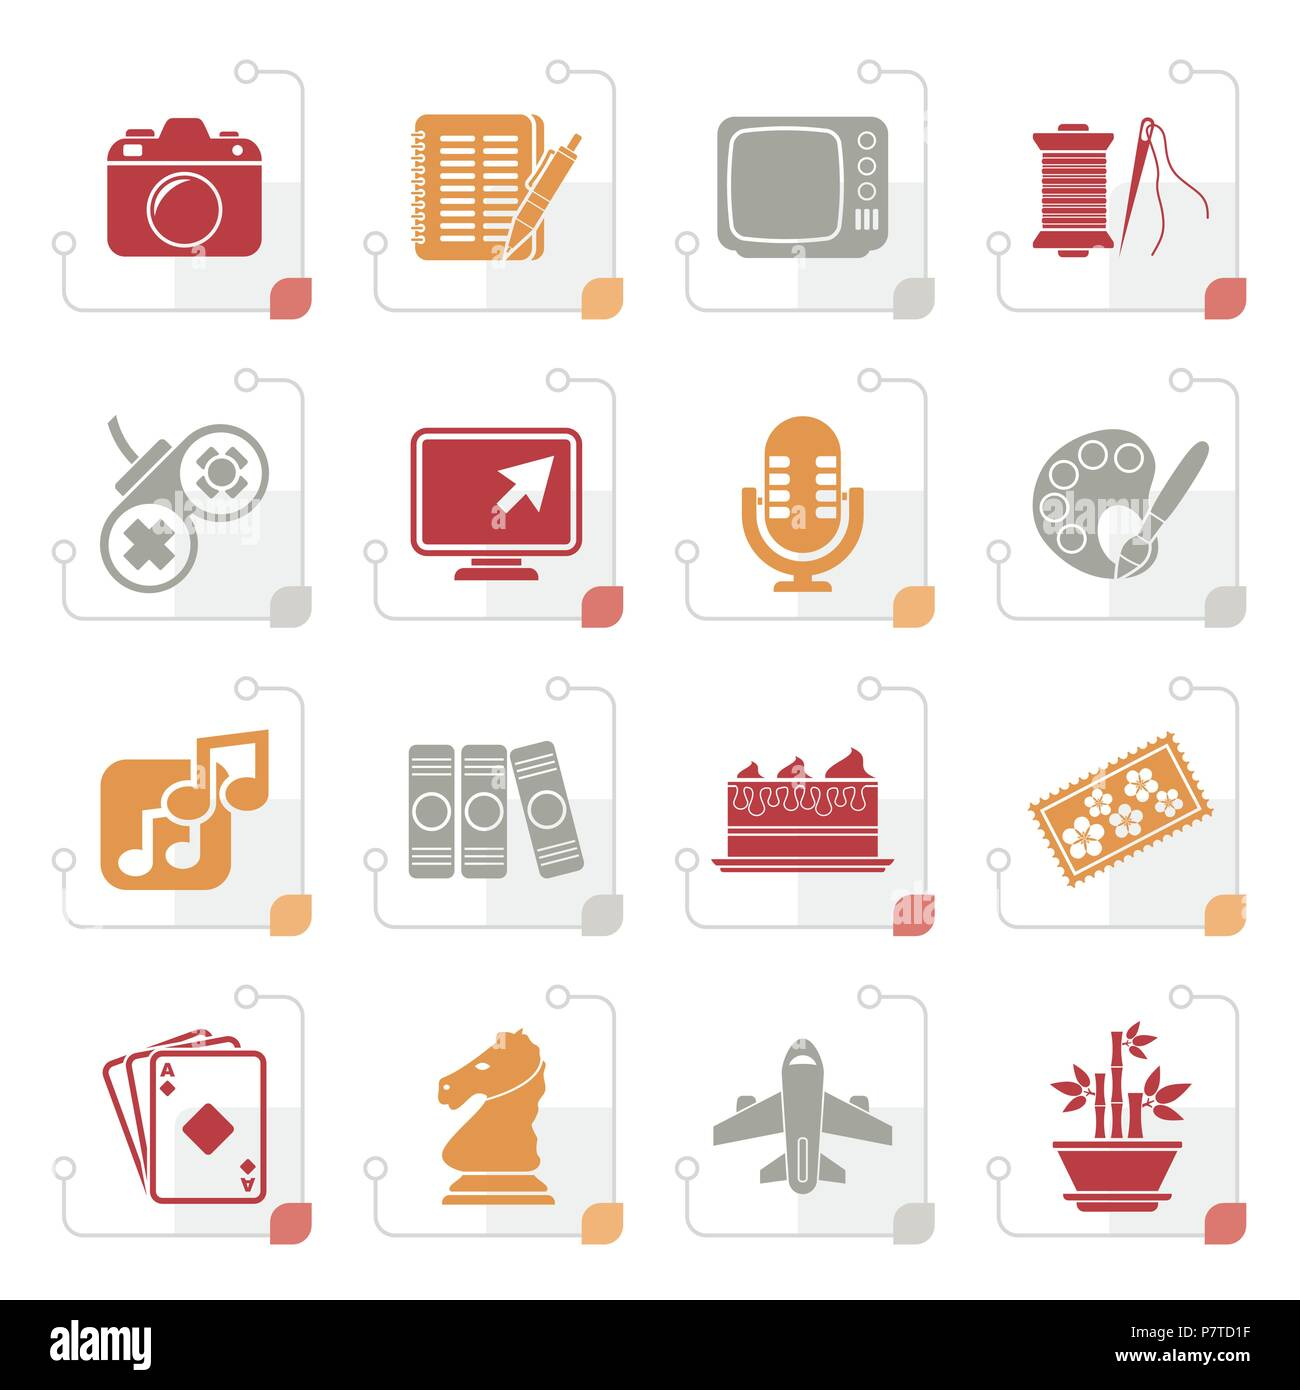 Stylized Hobbies and leisure Icons - vector icon set - Stock Image